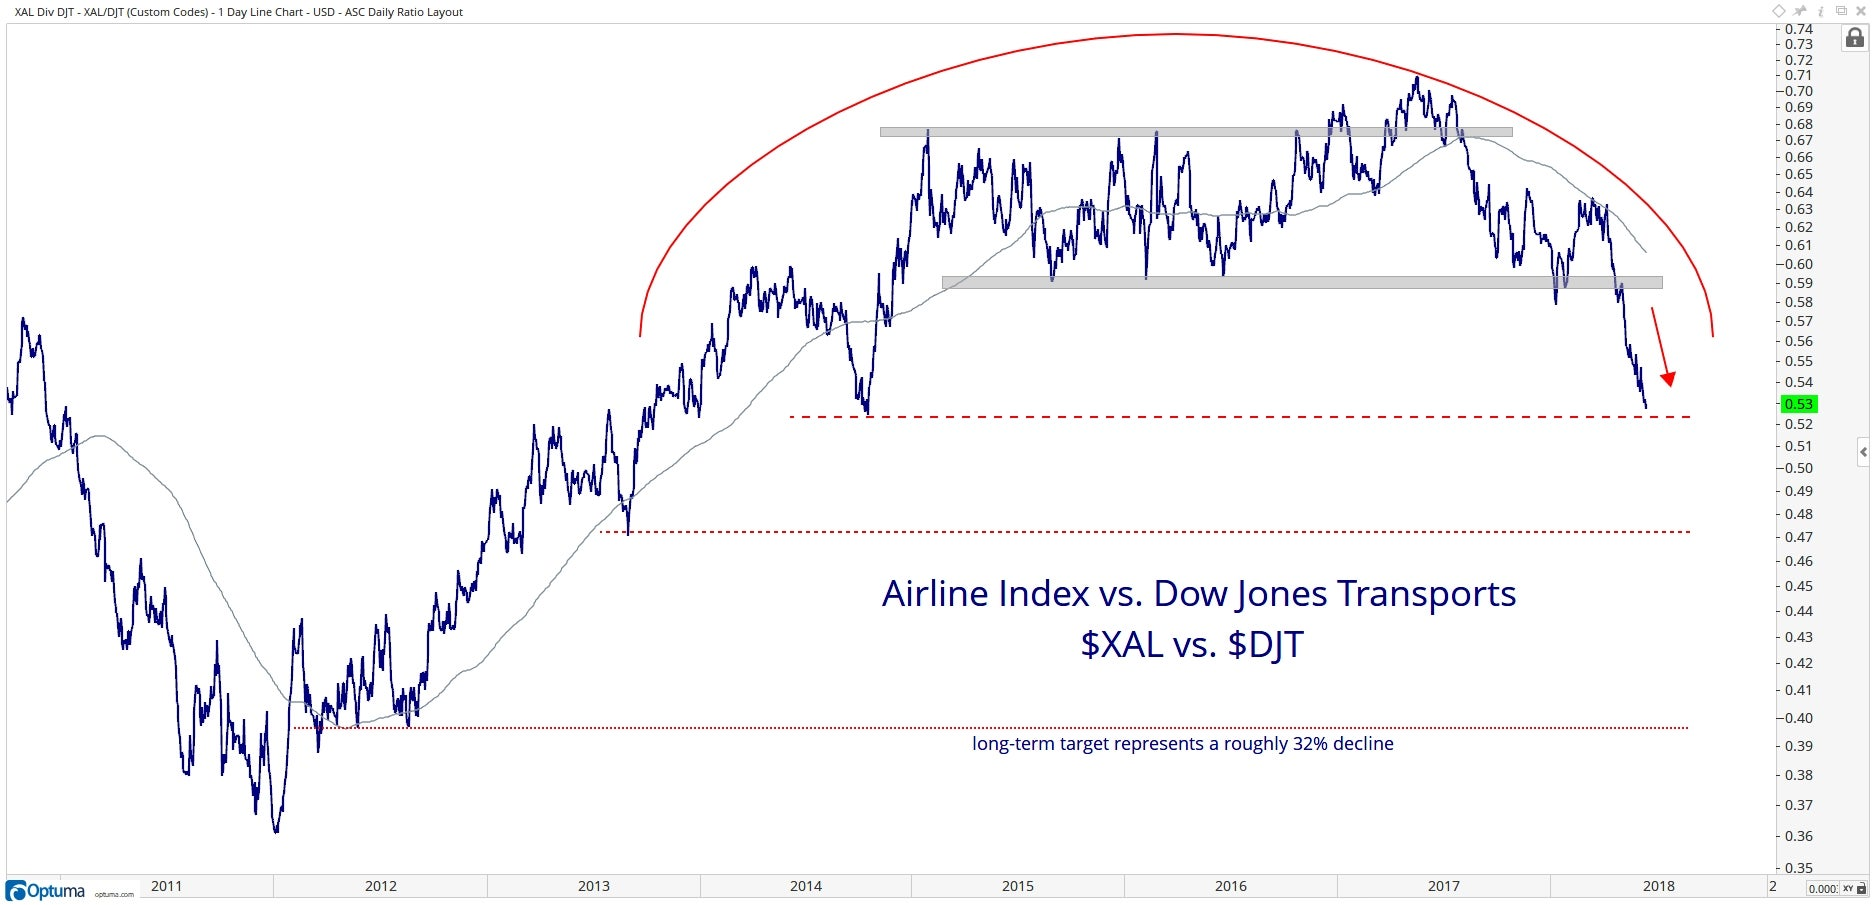 Technical chart showing the performance of the NYSE Arca Airlines Index ($XAL) vs. the Dow Jones Transportation Average($DJT)